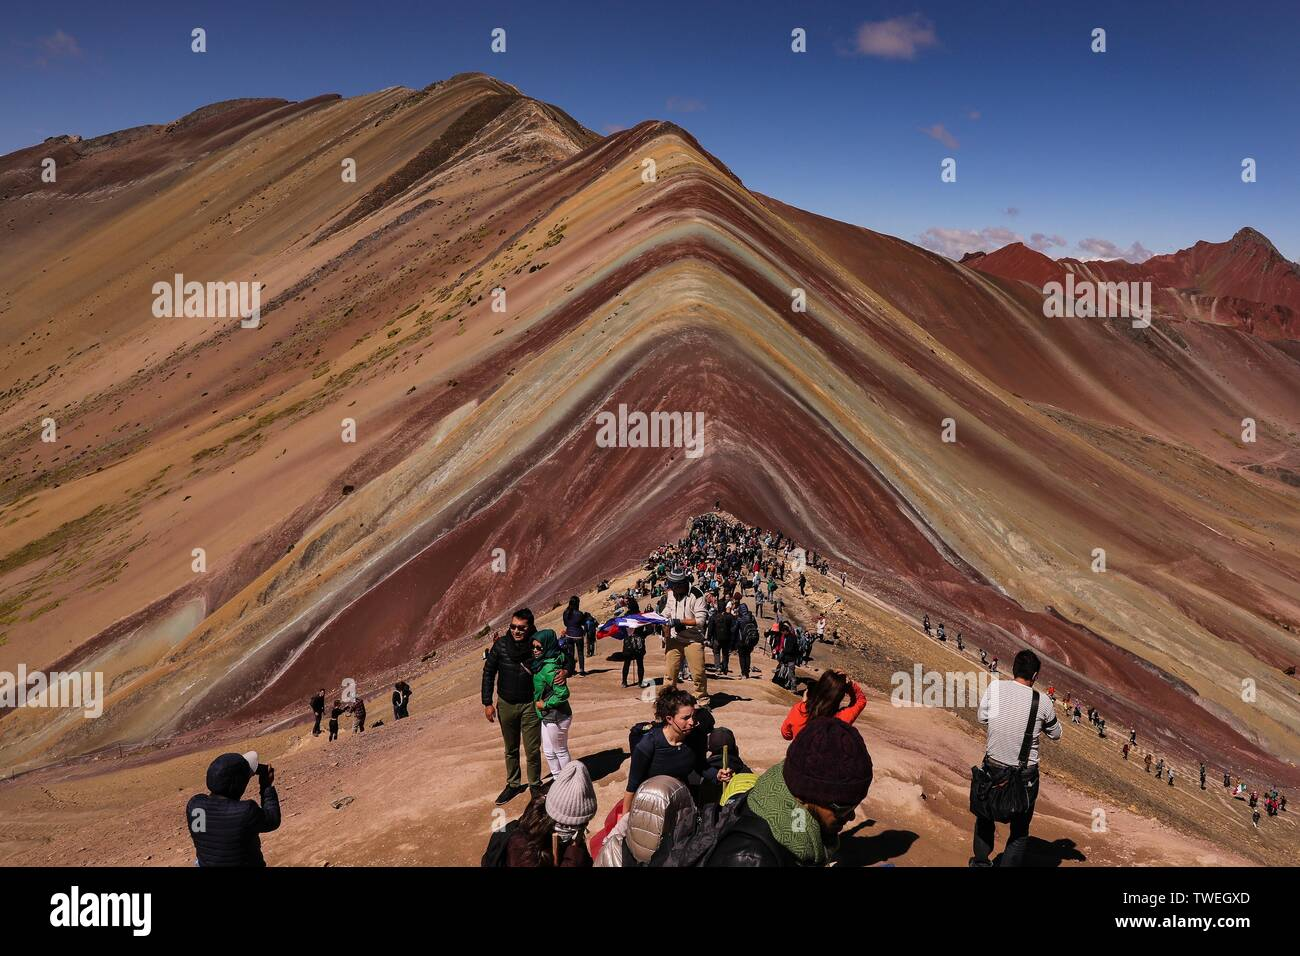 02 May 2019 Peru Cusco The Vinicunca Or The Rainbow Mountain With A Height Of 5200